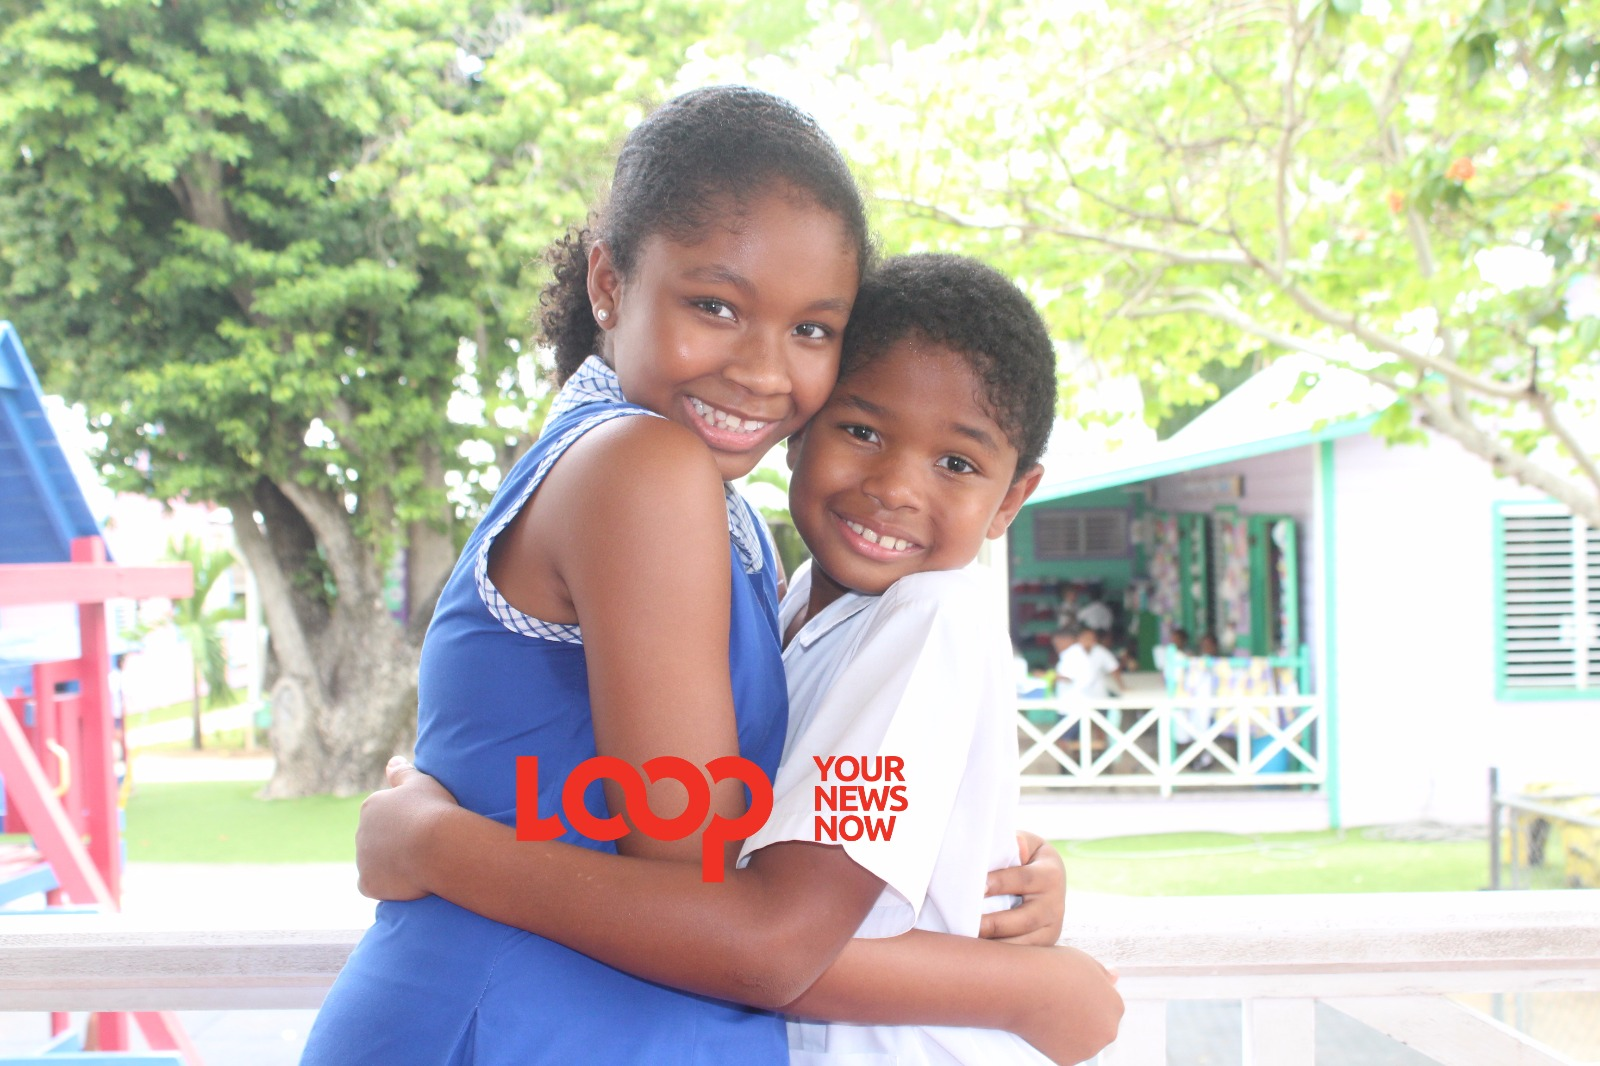 Top Girl in the island in the 2019 Barbados Secondary Schools' Entrance Examination hugging her little brother.